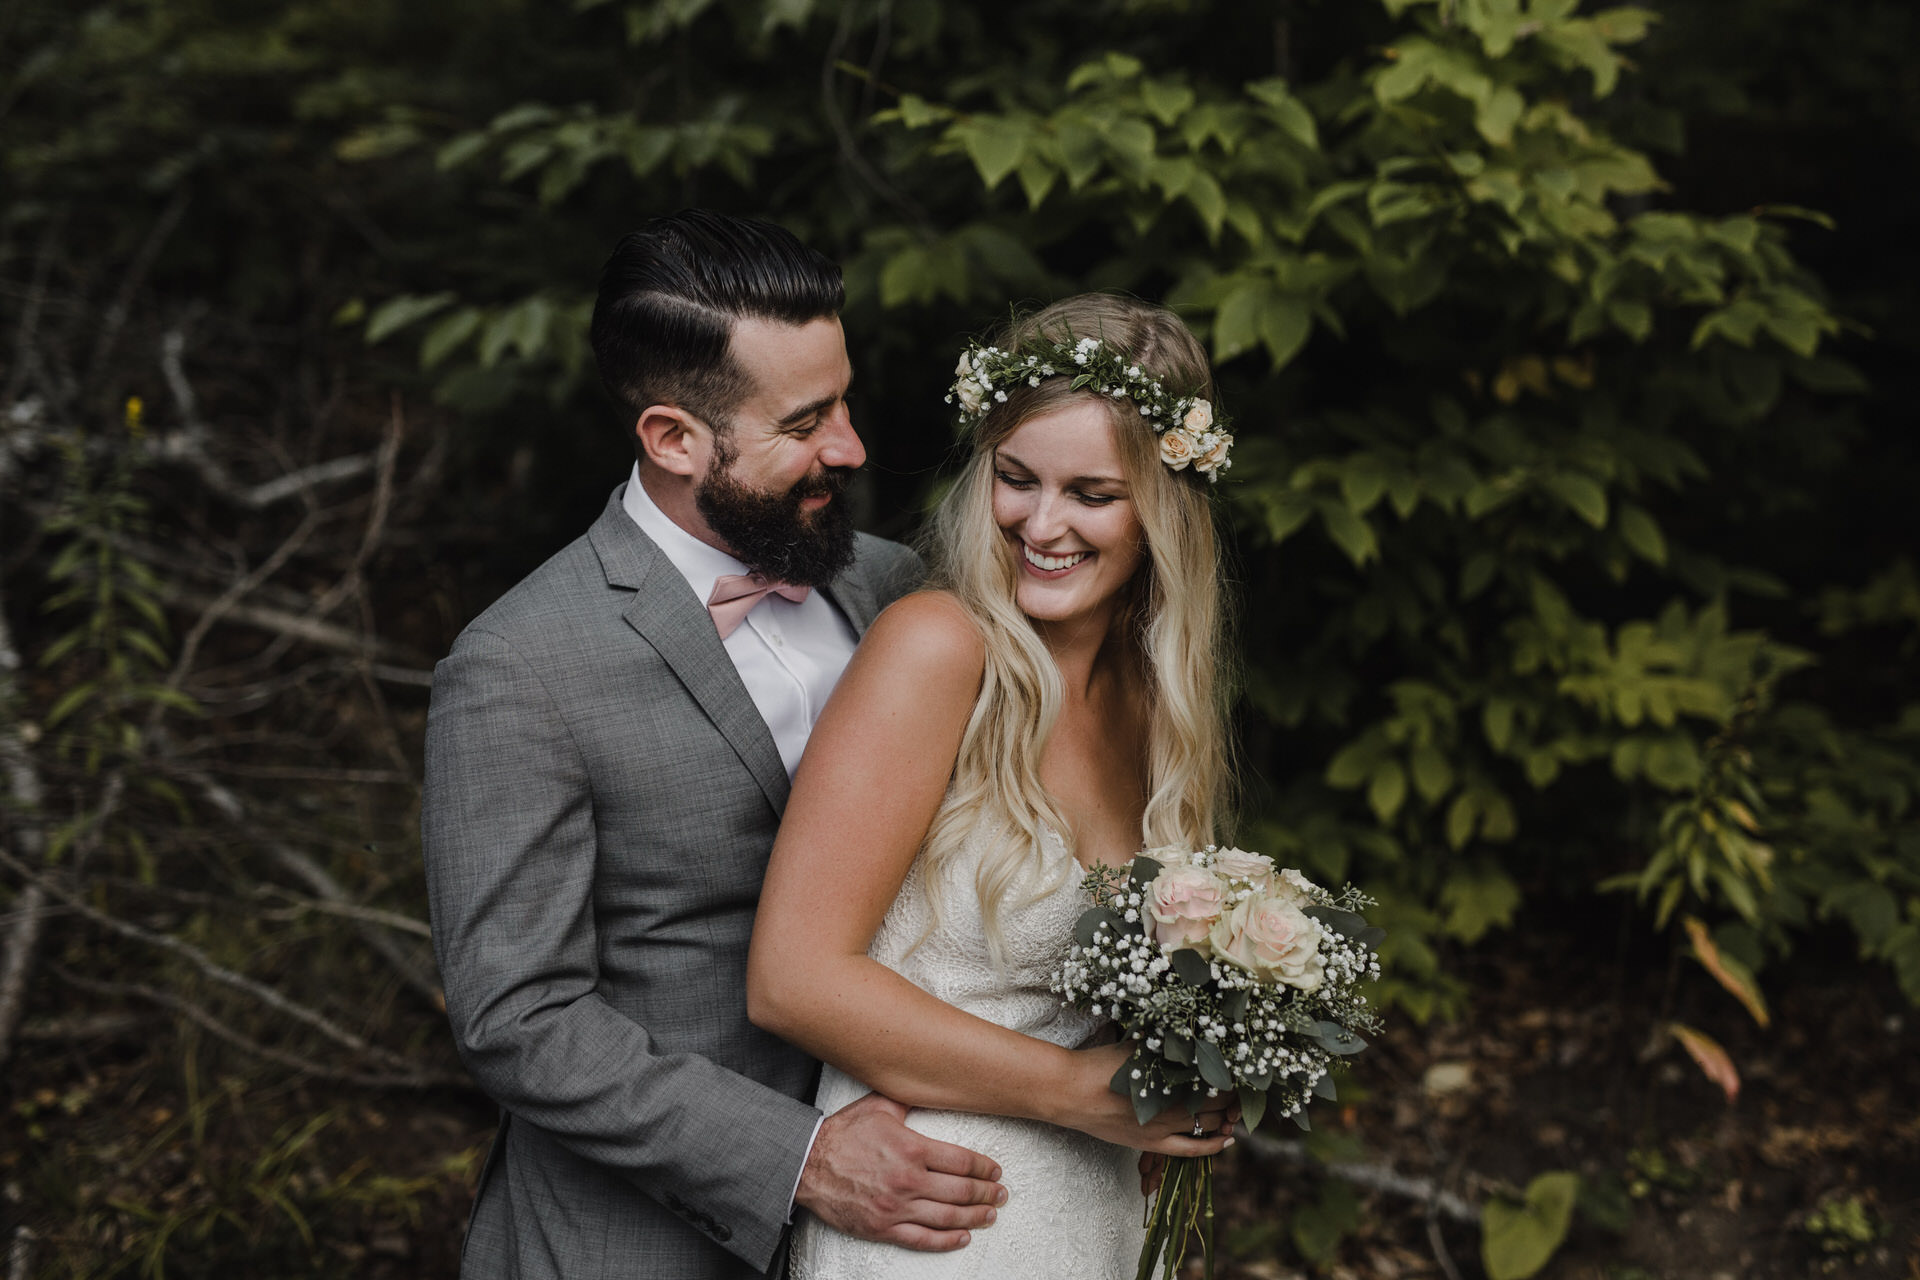 Muskoka Wedding - playing around in the forest